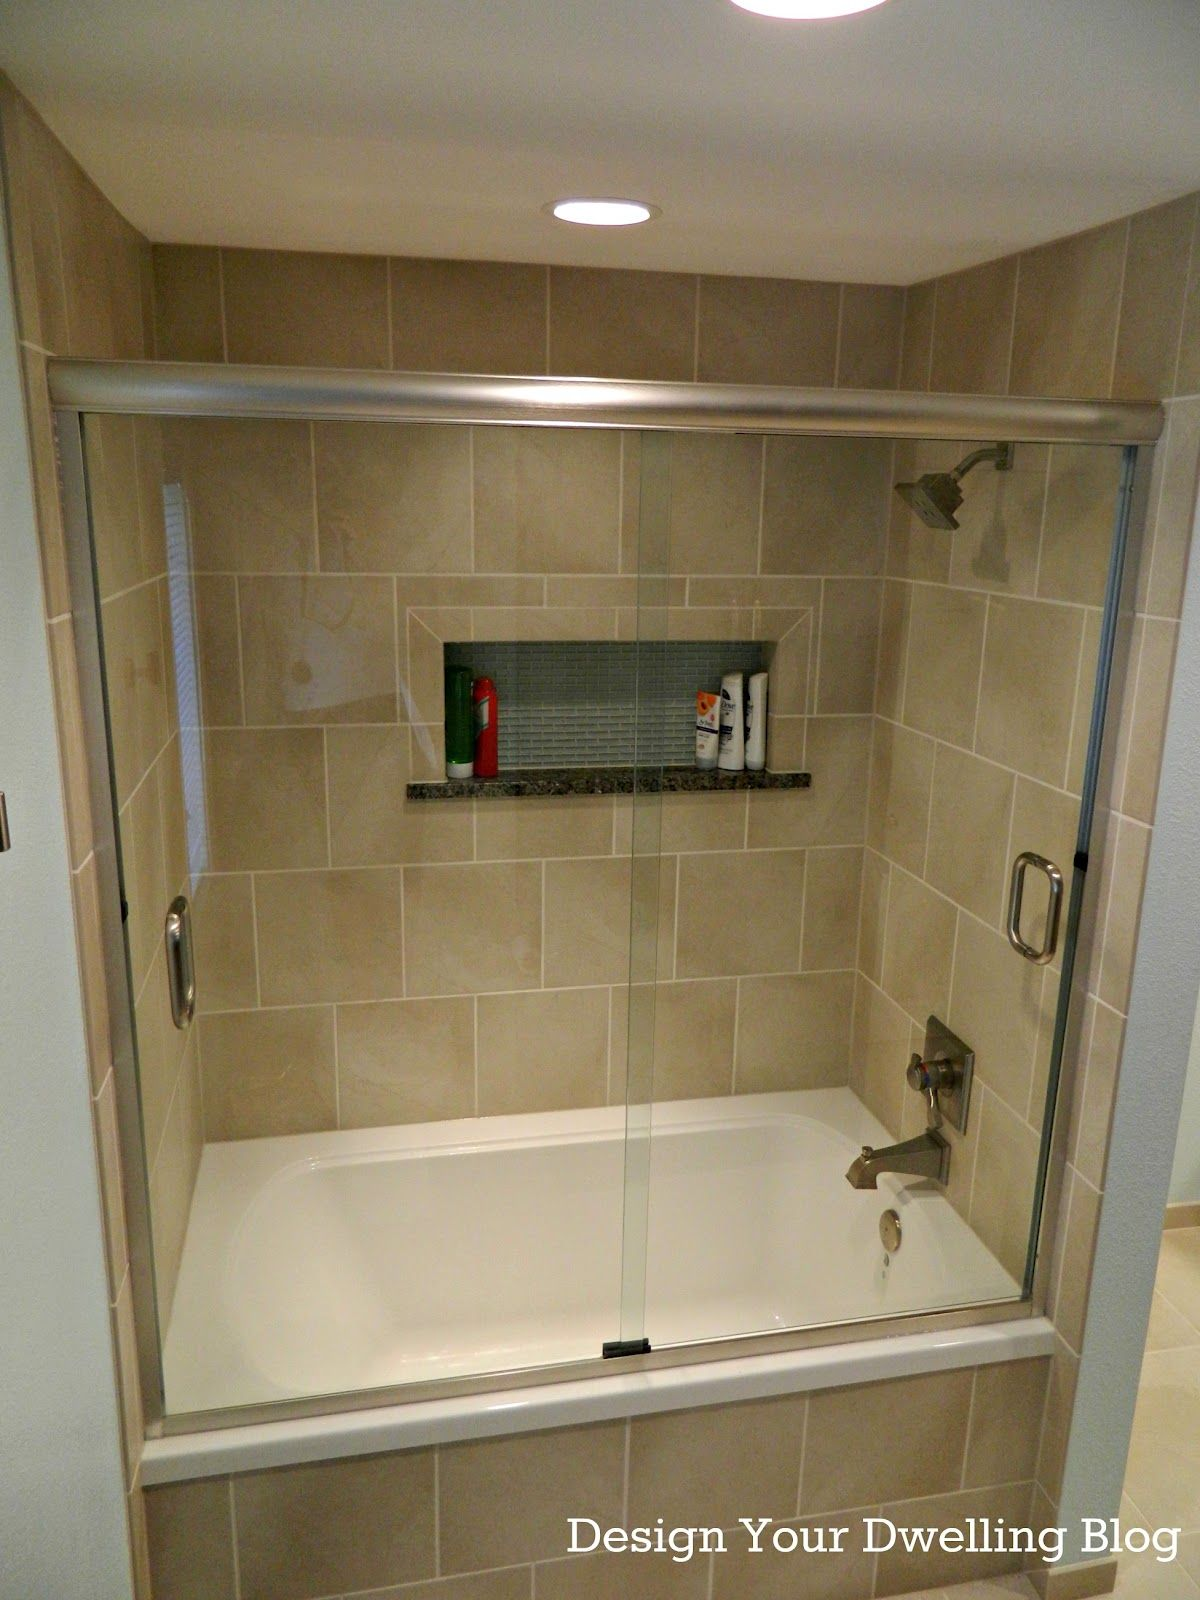 The bathroom bathroom picturesque sliding glass shower cubicle with ...